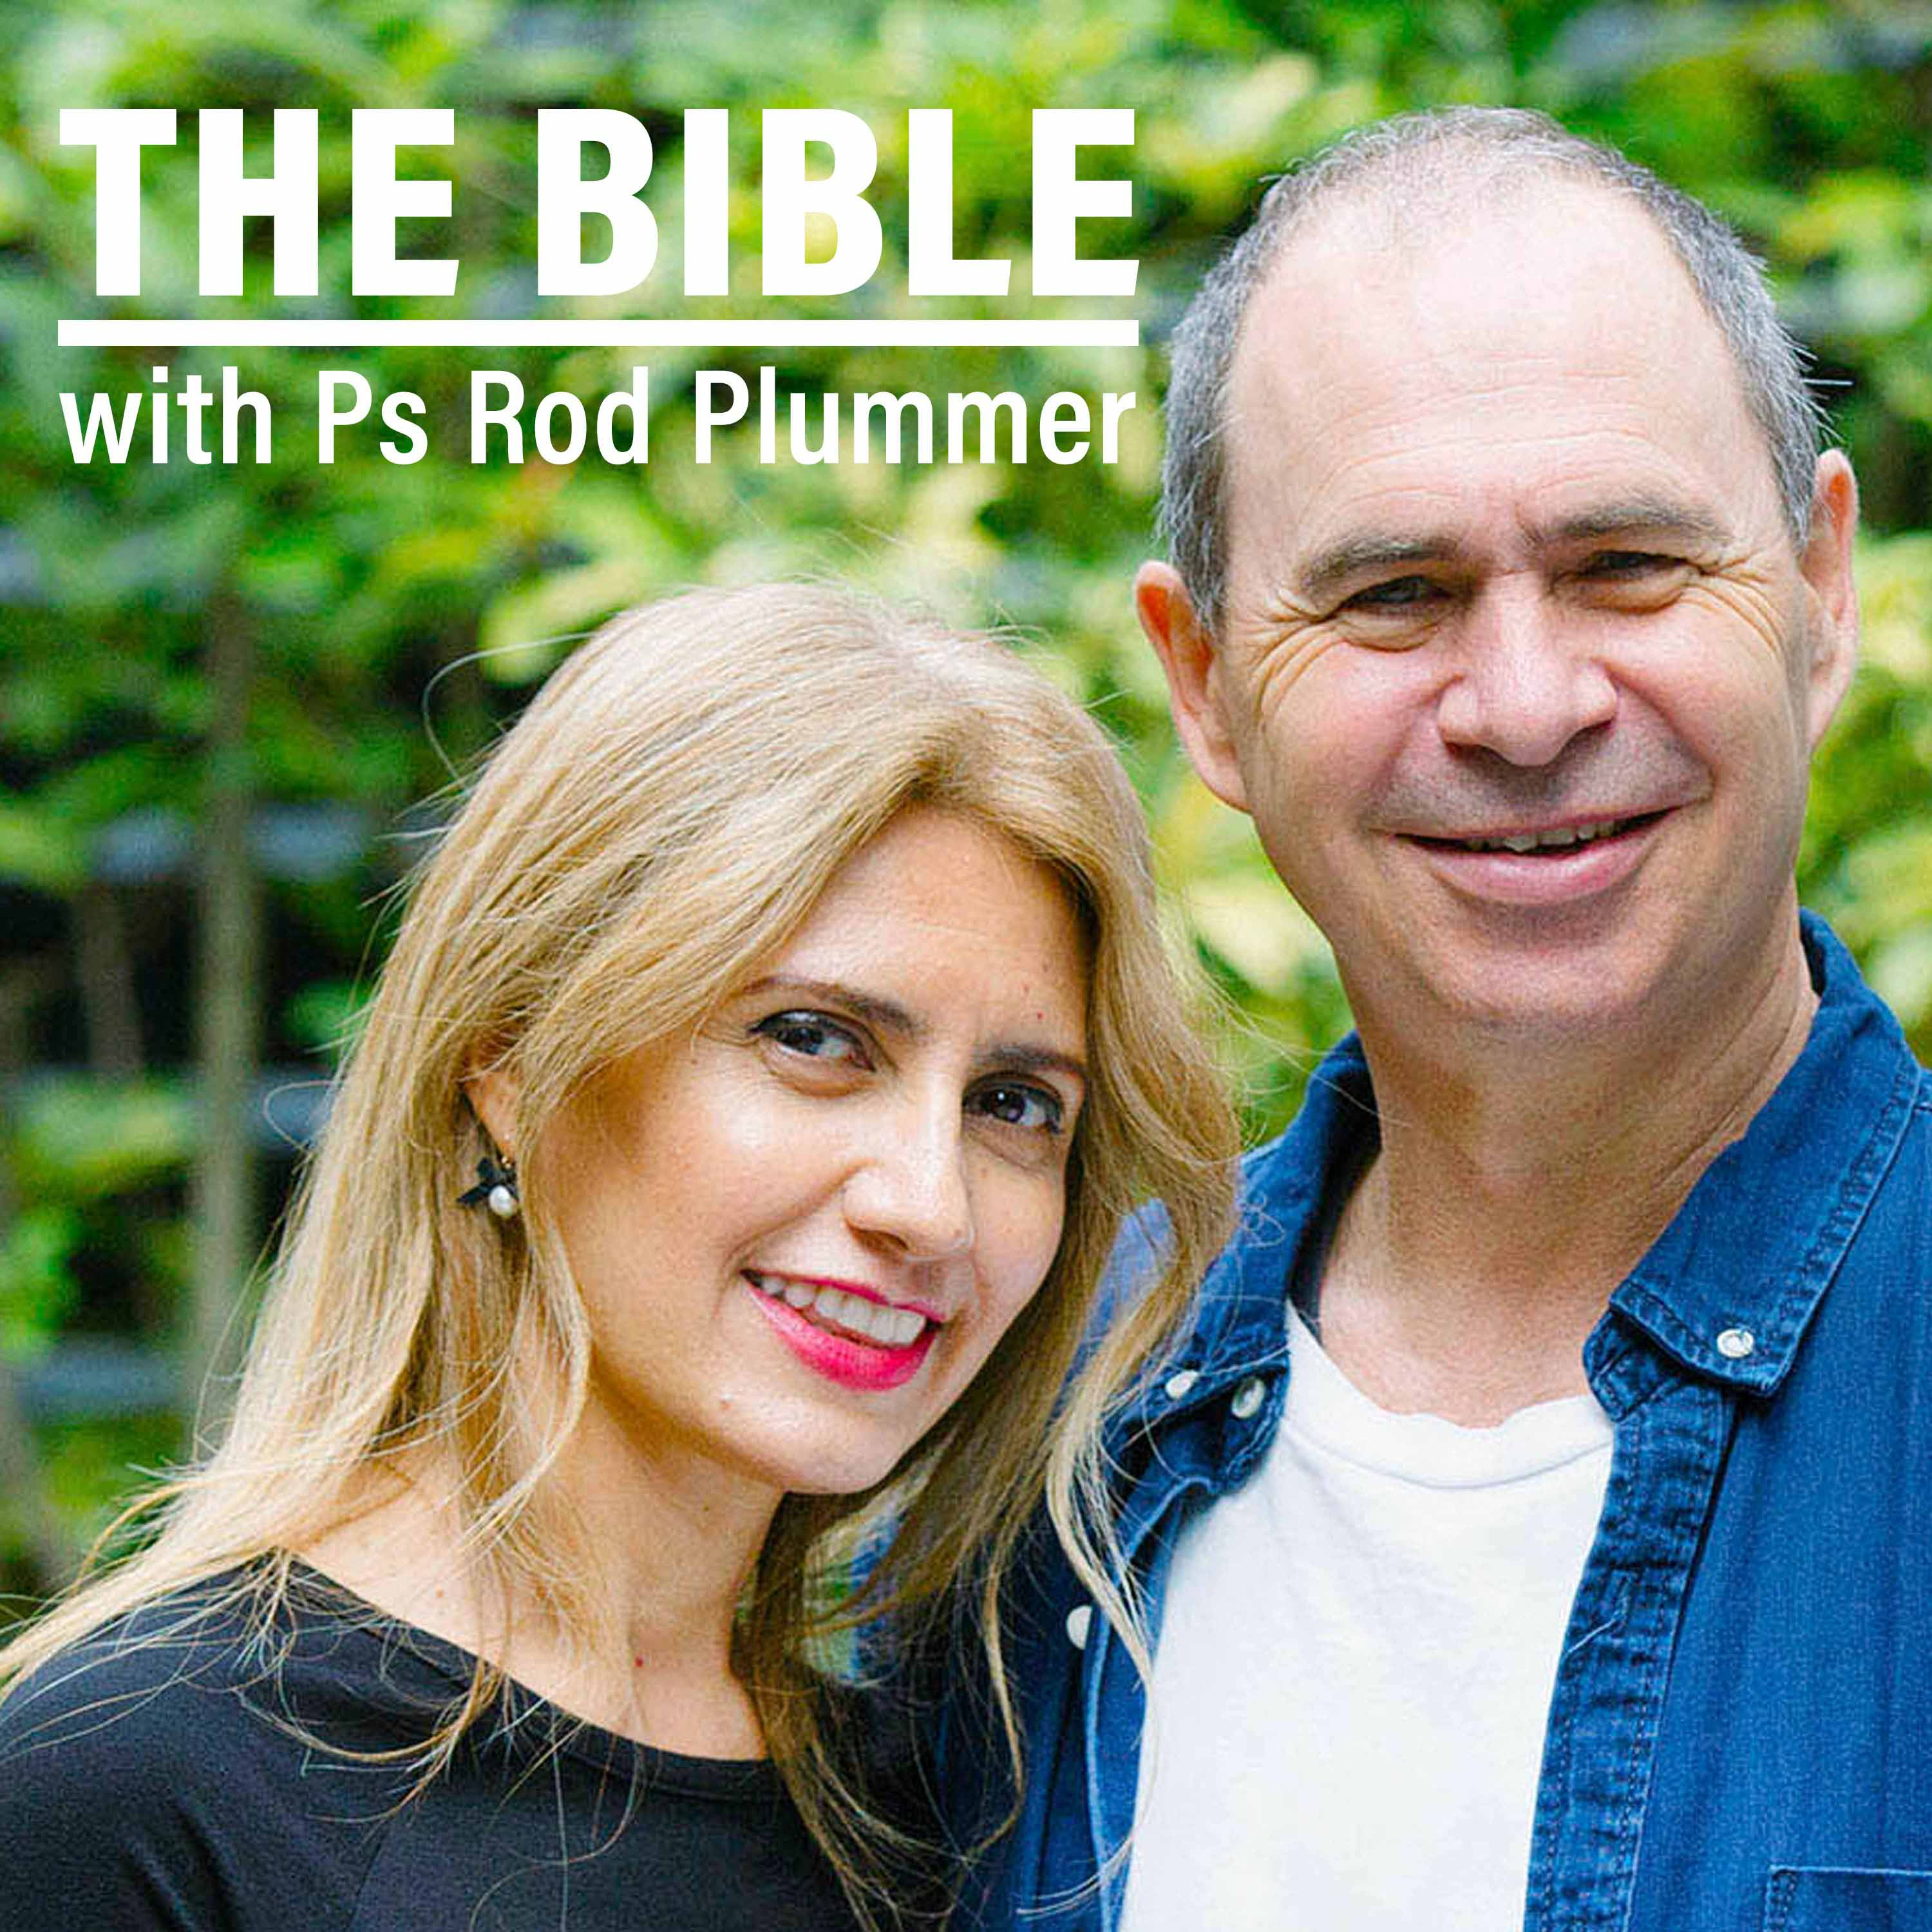 Artwork for podcast The Bible with Ps Rod Plummer